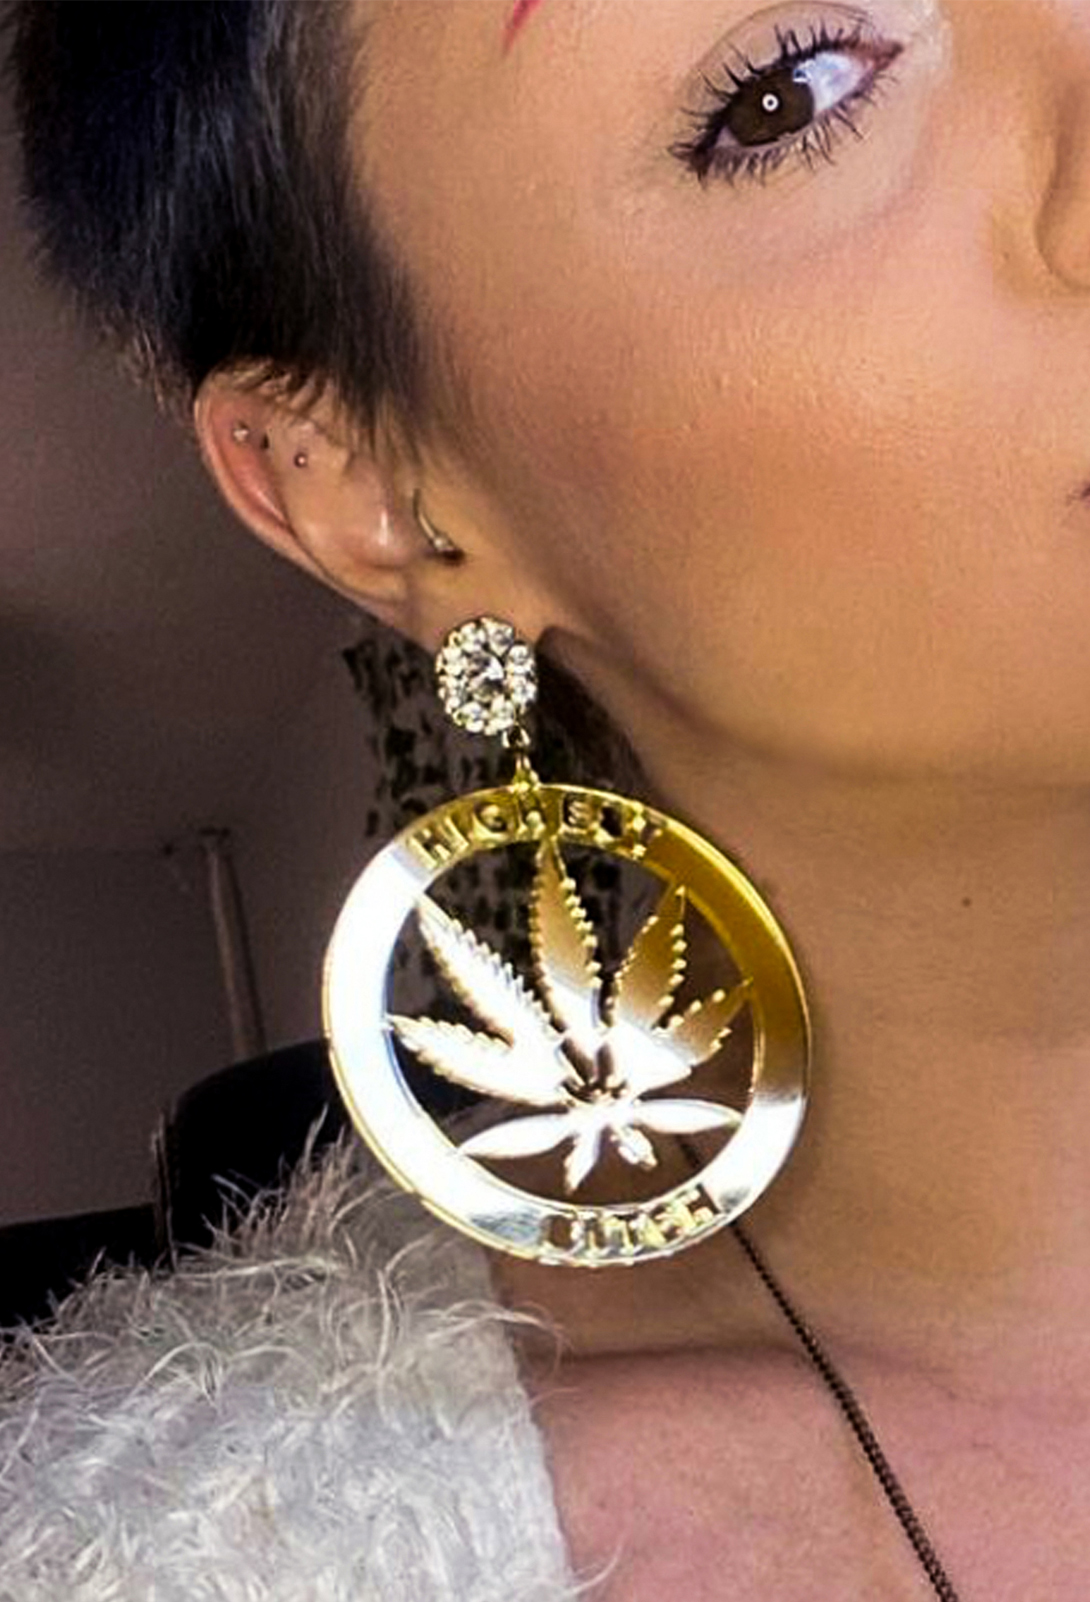 highest bitch_JUST GET HIGH_earrings acrylic_models